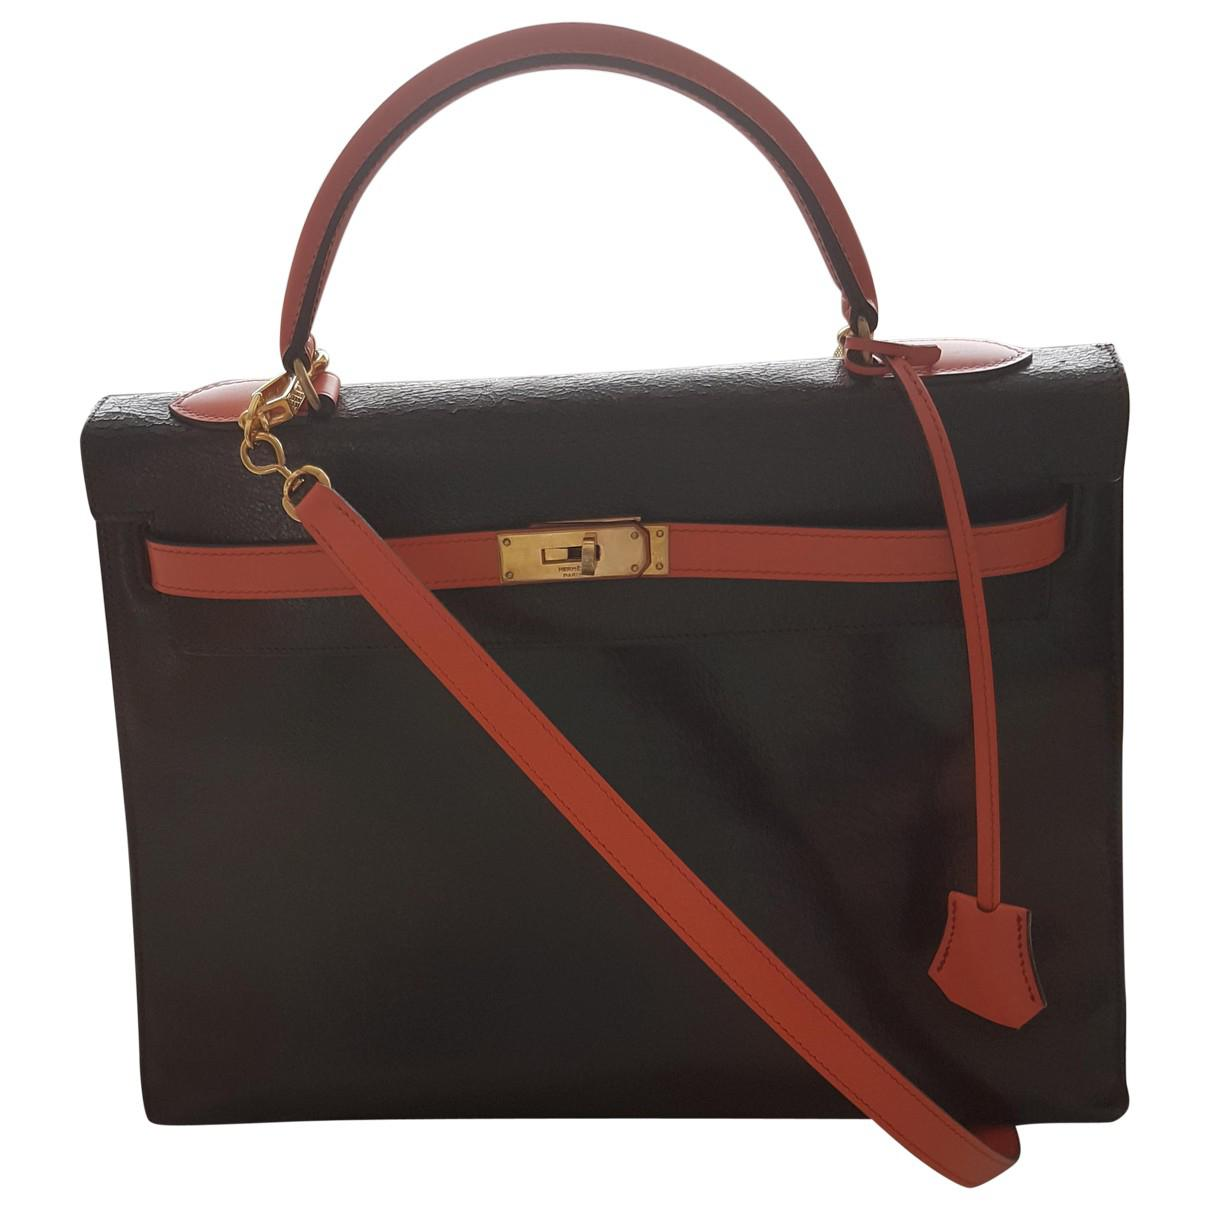 03b3ca53e84f ... cheapest lyst hermès pre owned kelly leather crossbody bag in black  597eb 49e05